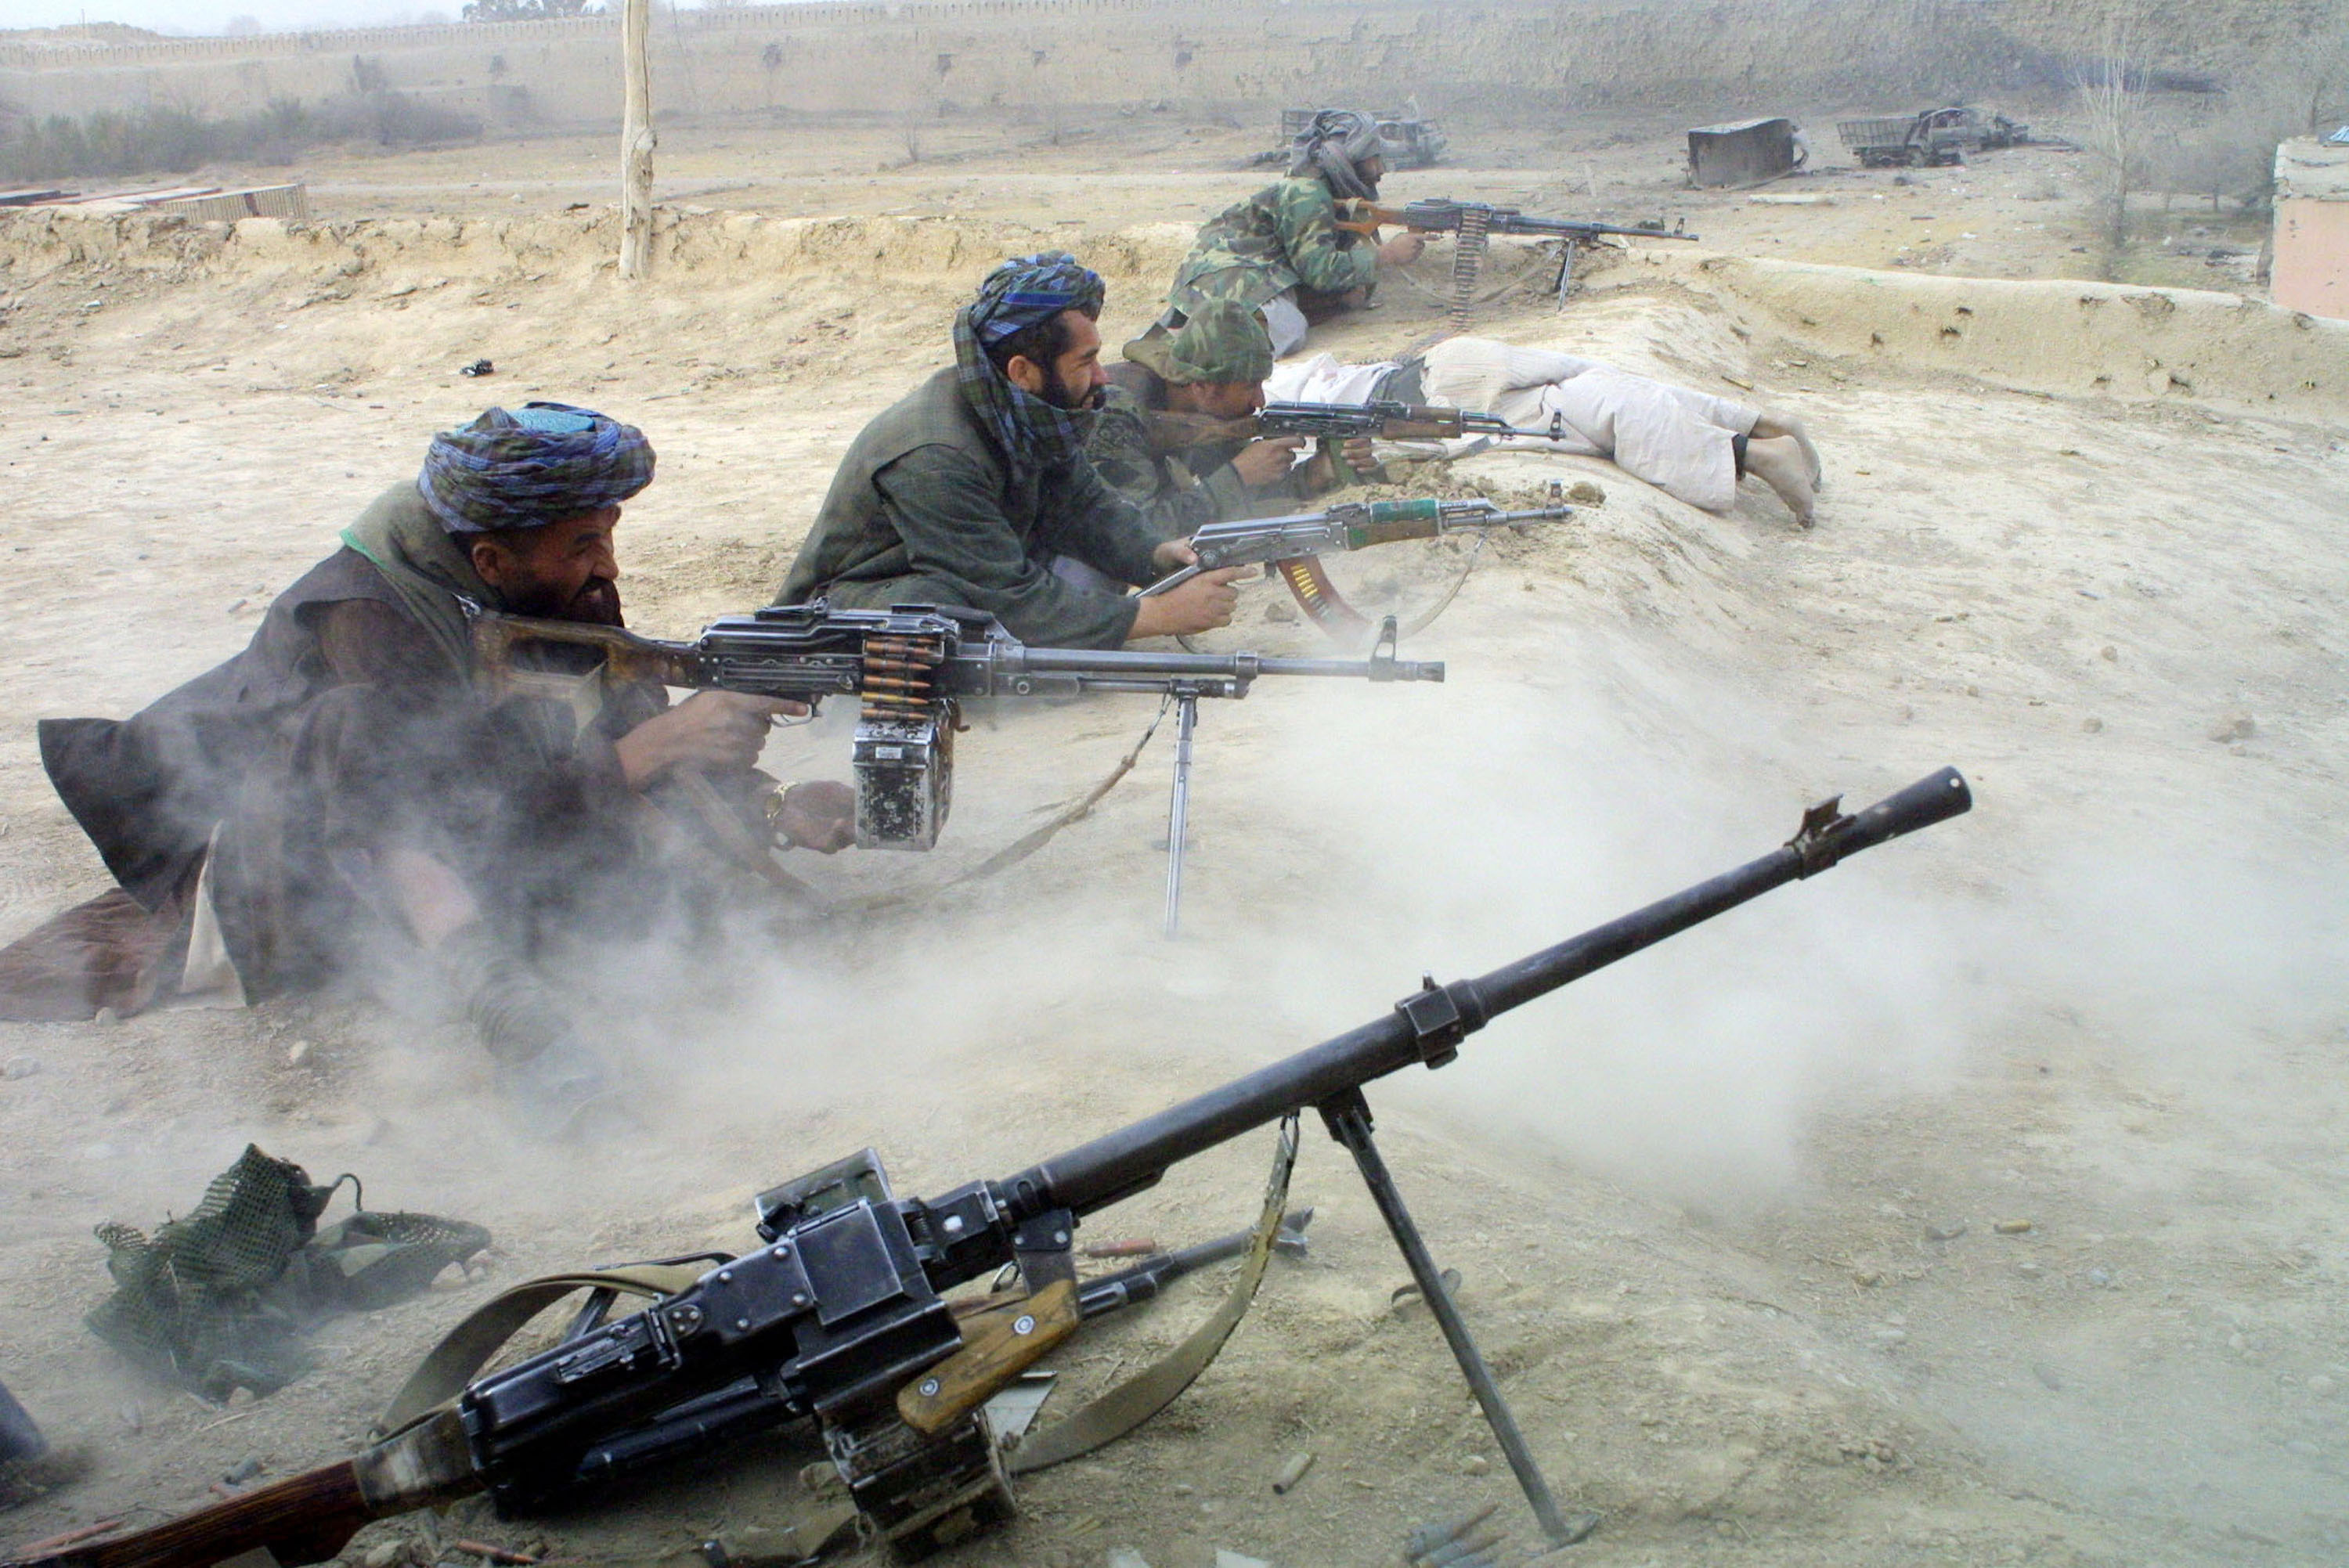 Northern Alliance fighters battle pro-Taliban forces in 2001 in a fortress near Mazar-e-Sharif, Afghanistan.